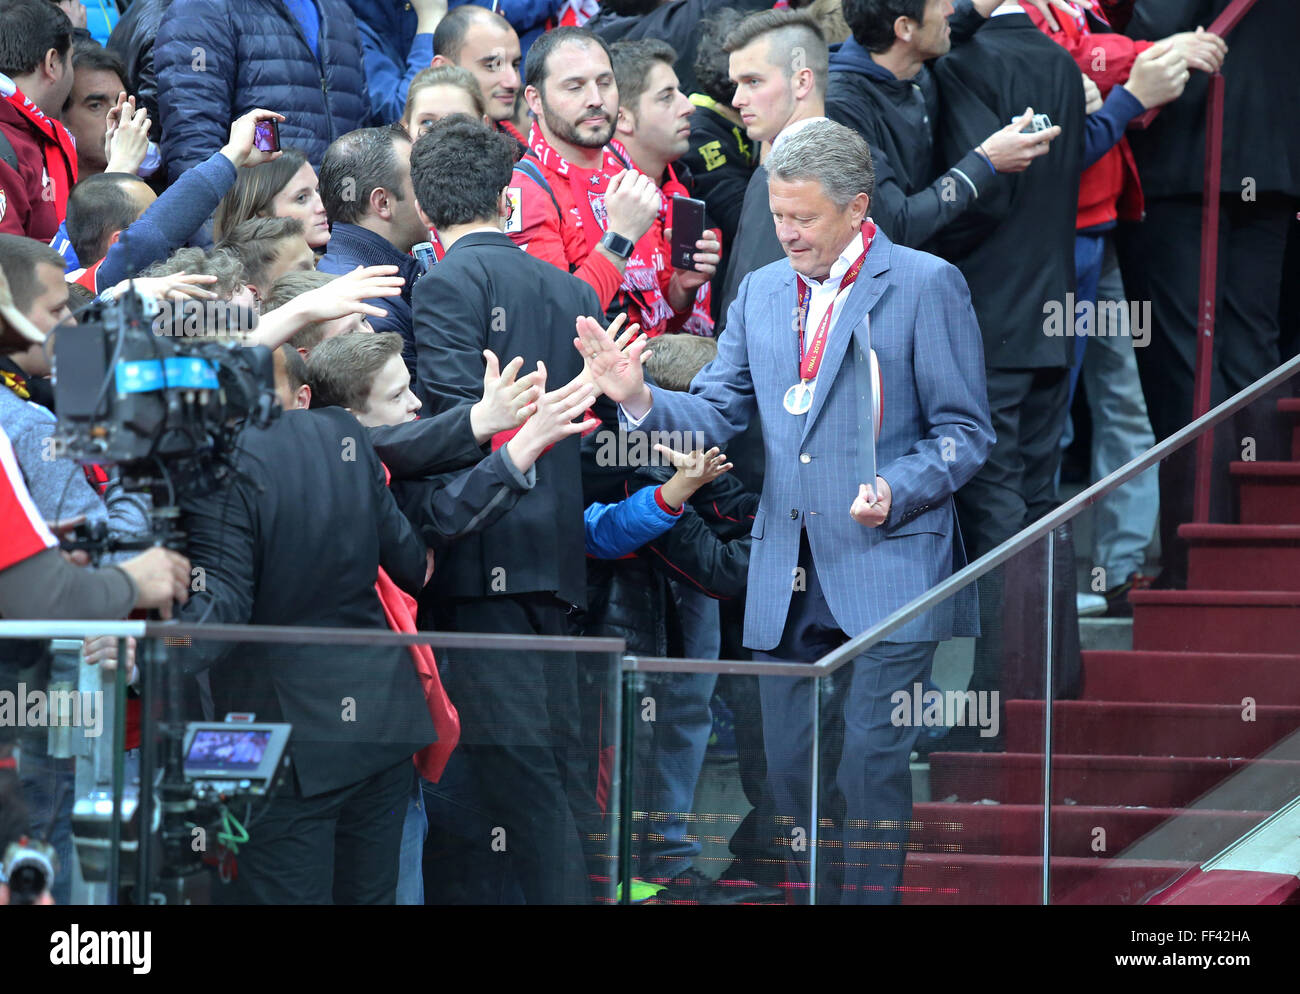 WARSAW, POLAND - MAY 27, 2015: Myron Markevych, head coach of FC Dnipro Dnipropetrovsk after the UEFA Europa League - Stock Image